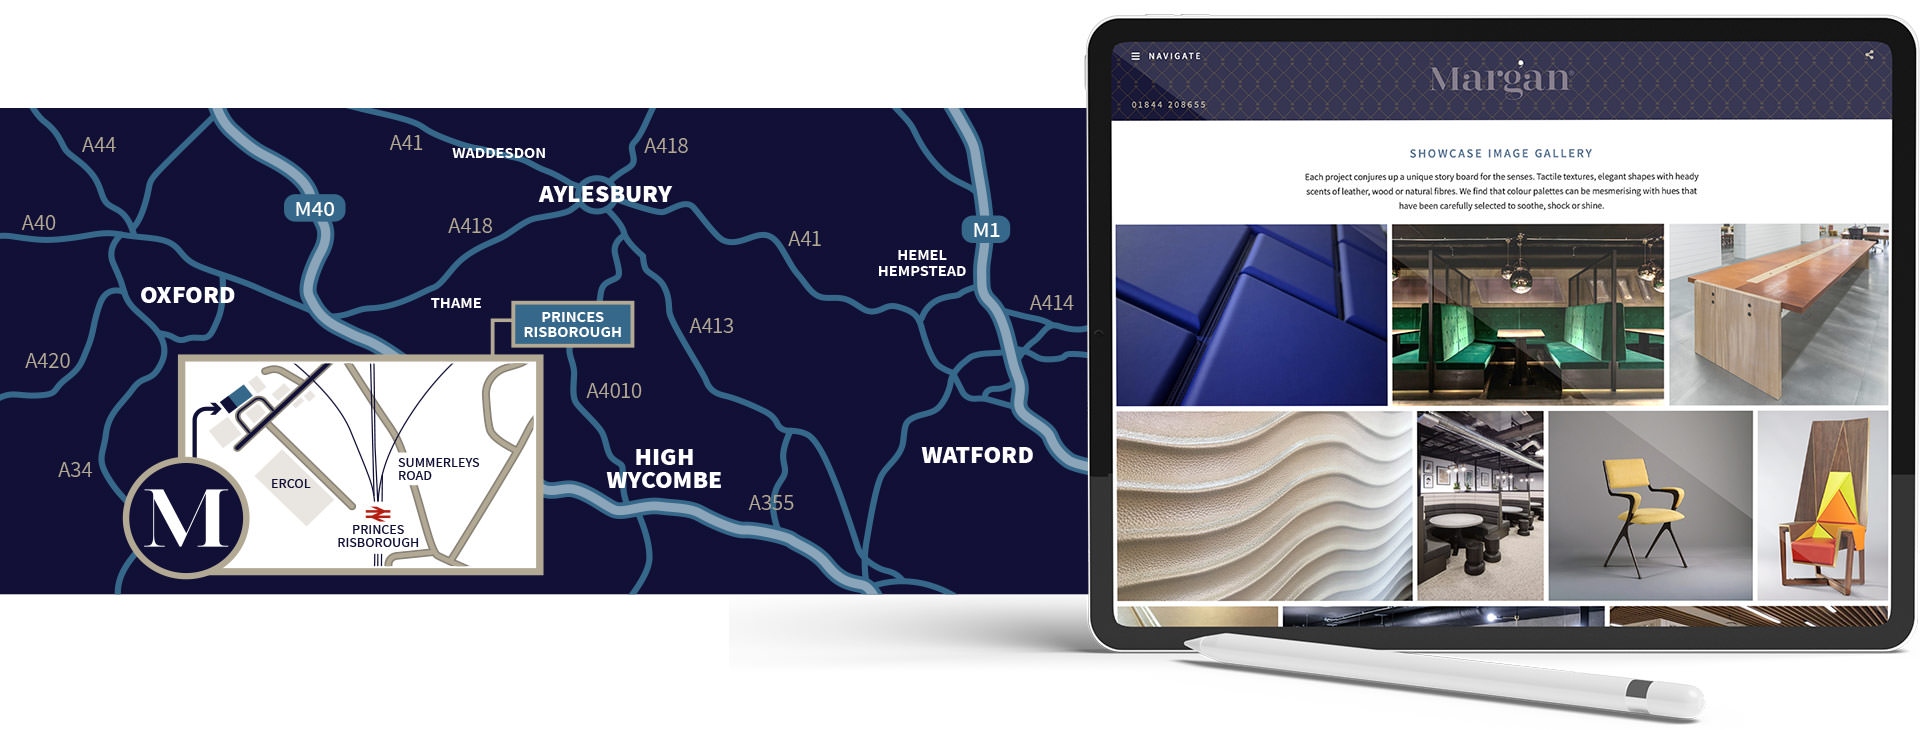 Custom drawn map and bespoke website design for Margan Limited